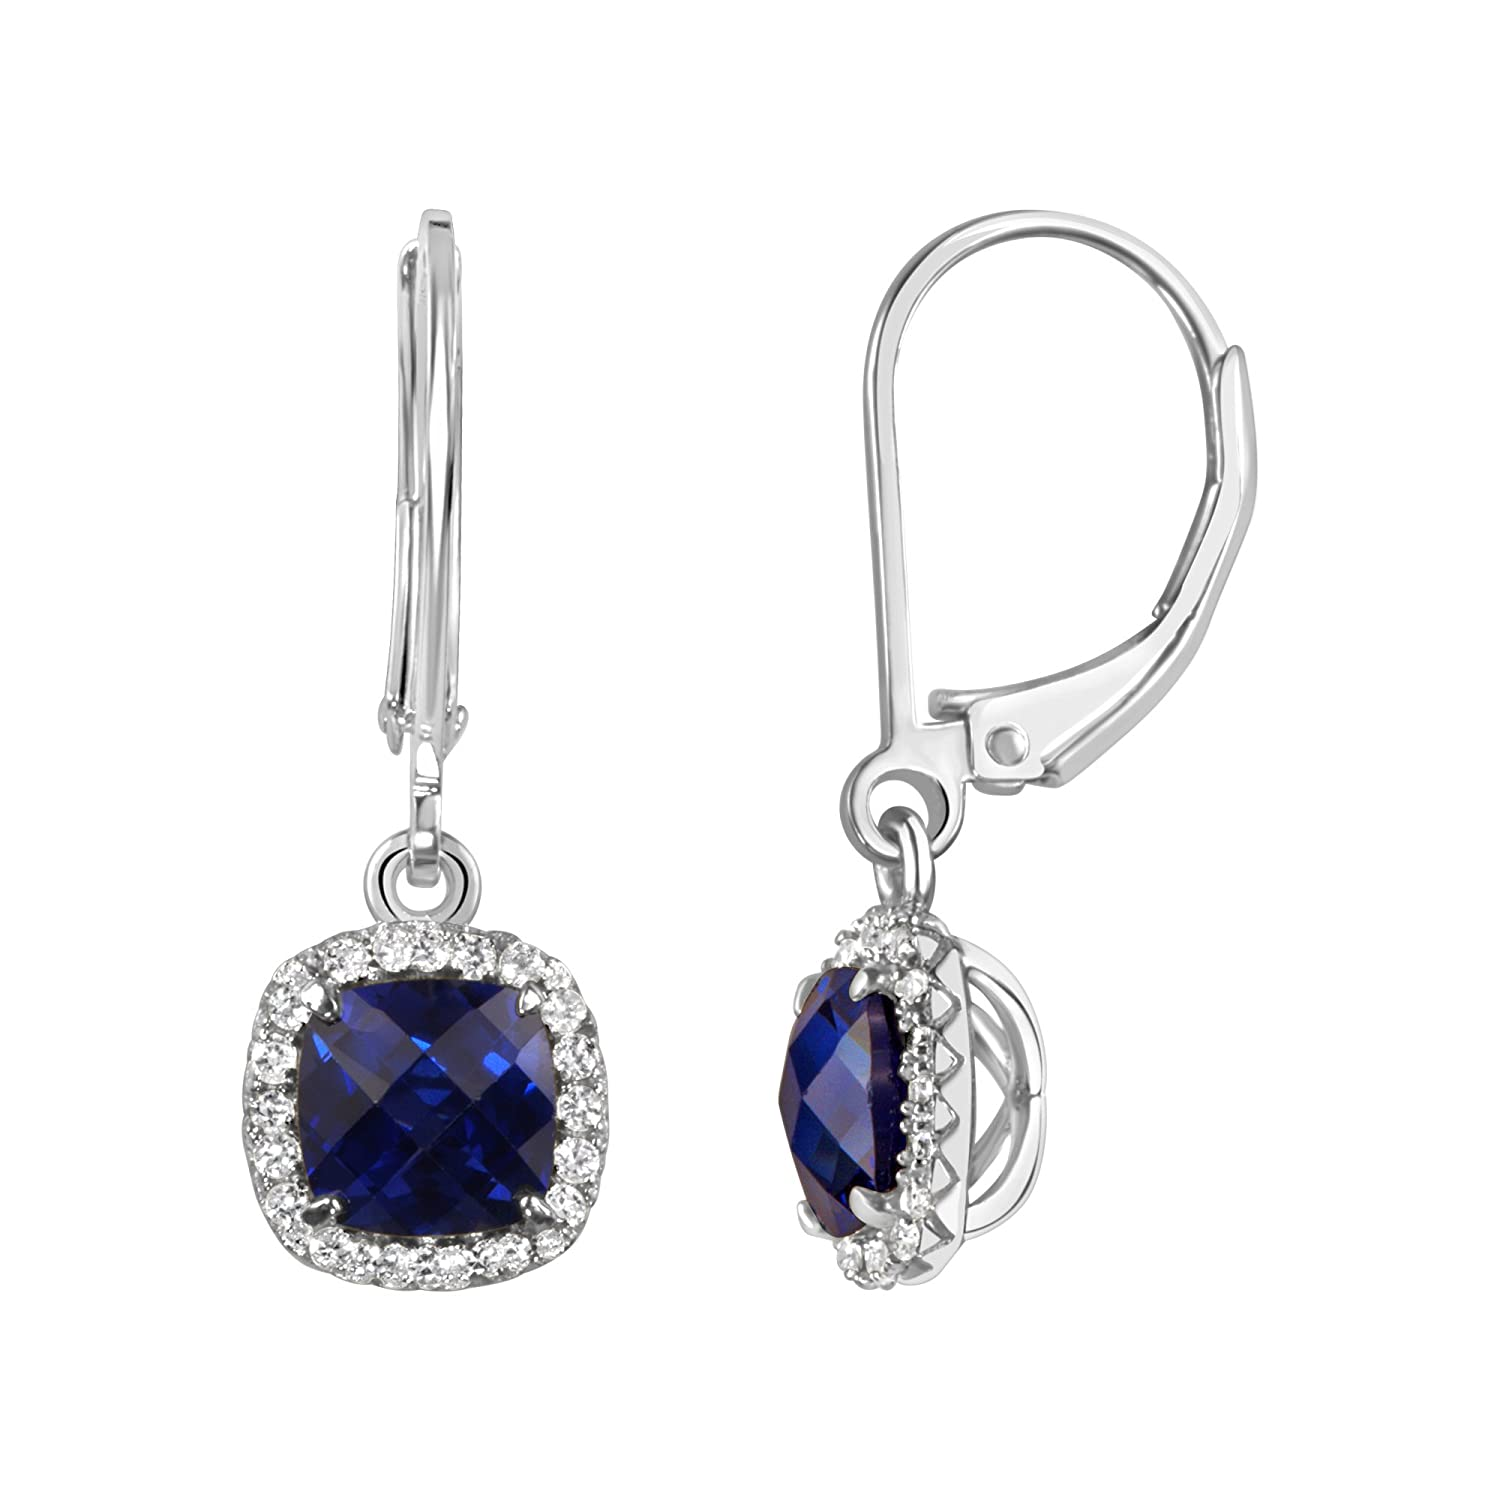 6e3ba3620 Amazon.com: Lab Created Blue Sapphire Earrings in Sterling Silver Cushion  Shape Created White Sapphire Halo: Jewelry